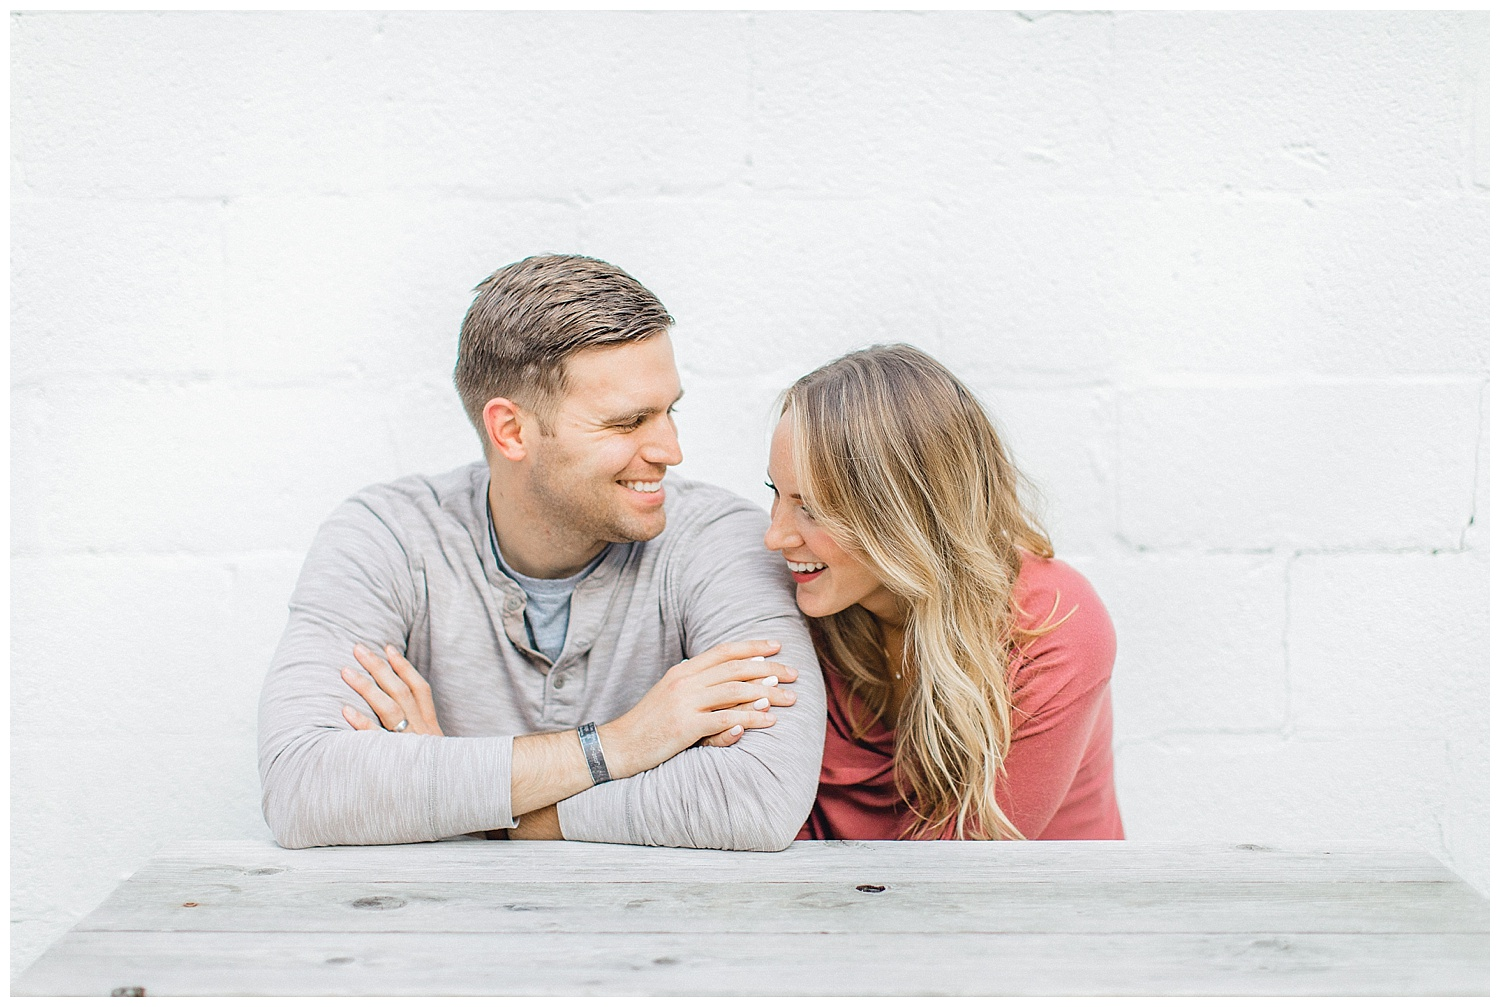 ERC_0800_Downtown Nashville Engagement Session at Barista Parlor | Emma Rose Company Wedding Photographer | Outfit Inspiration for Engagement Session | Kindred Light and Airy Photographer.jpg